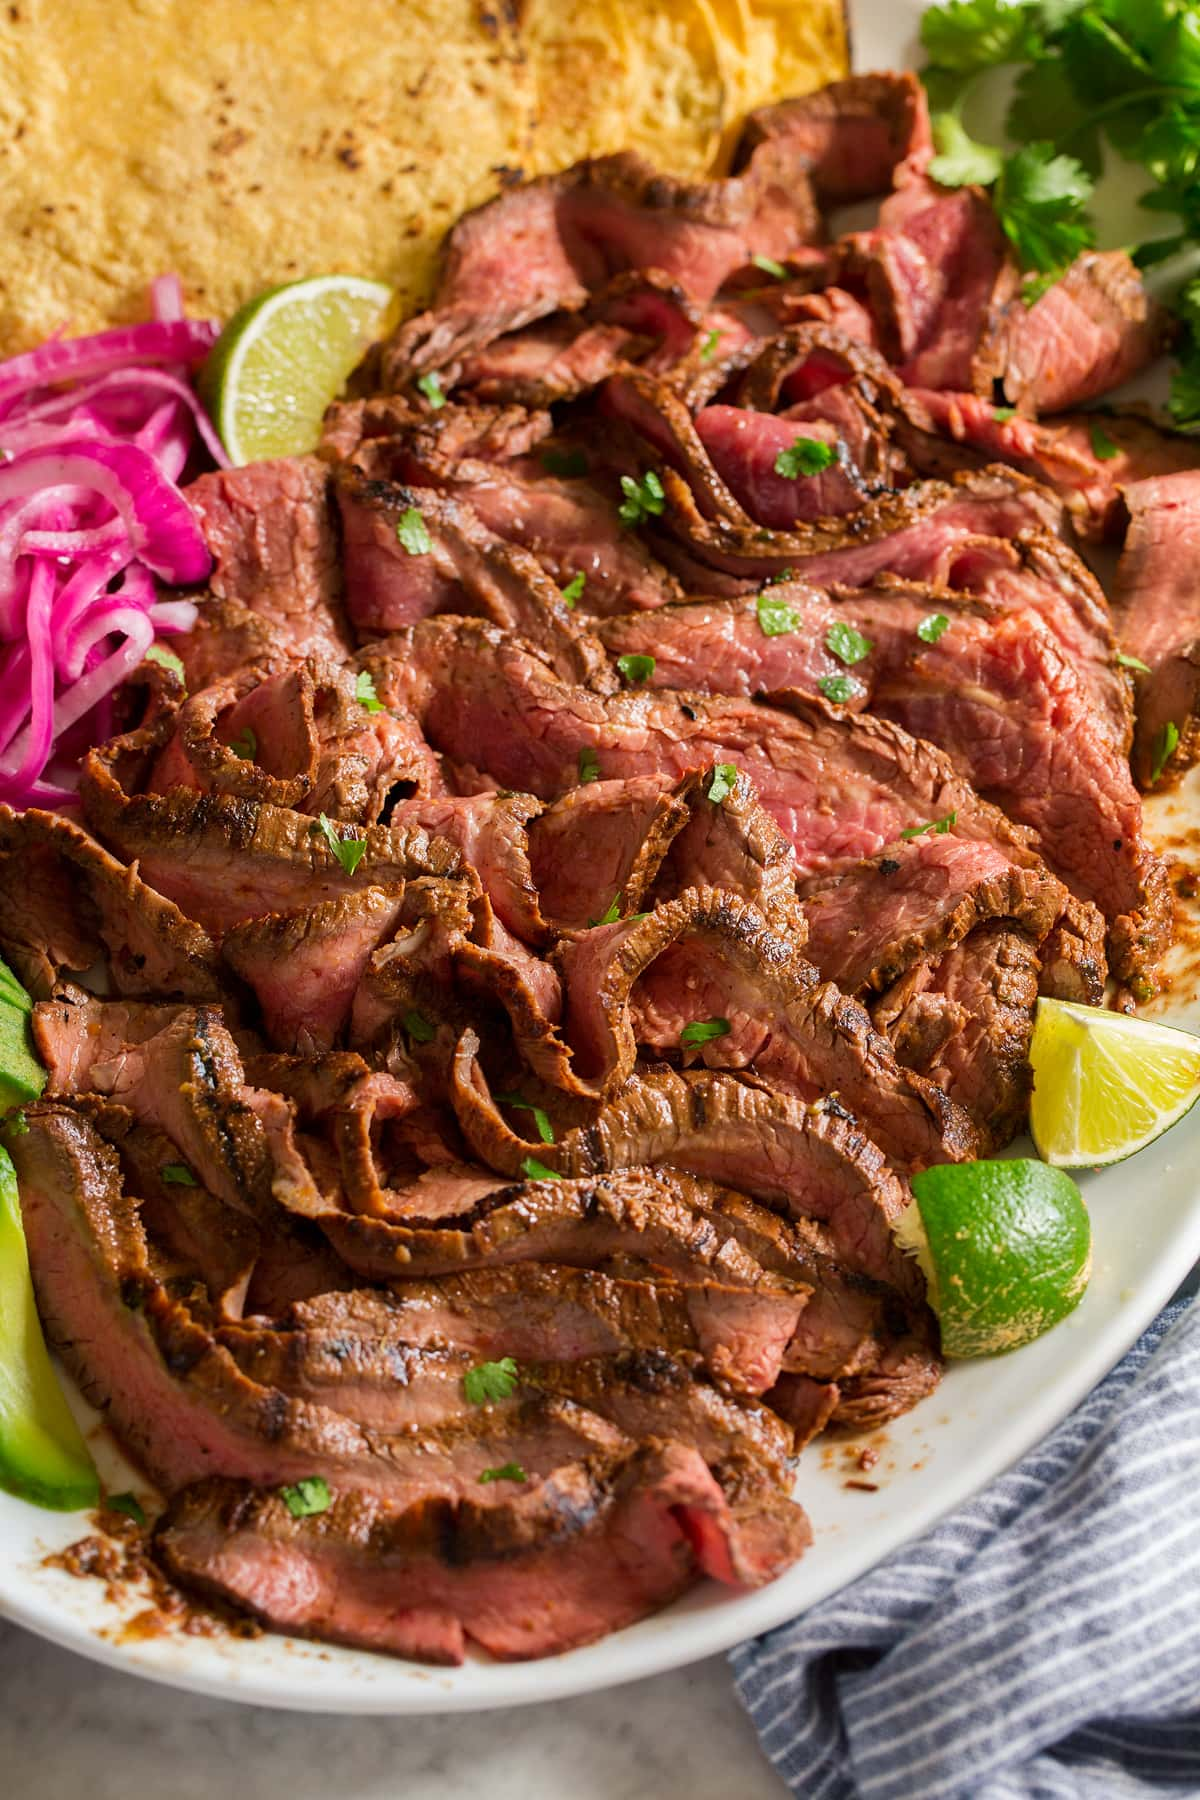 Sliced strips of carne asada shown on a white platter from a side view.